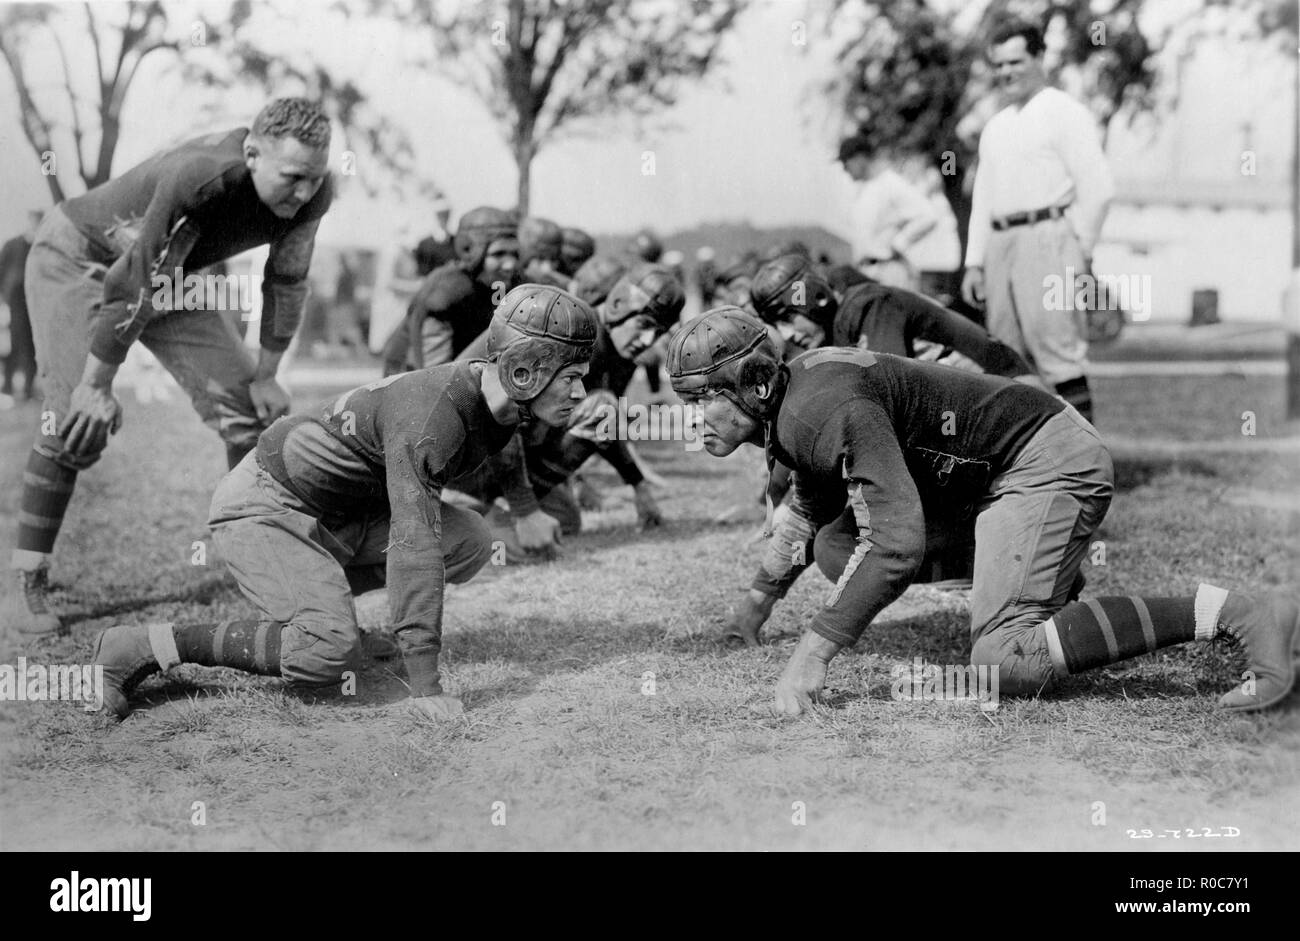 Football Game, Movie Still, 1930's - Stock Image